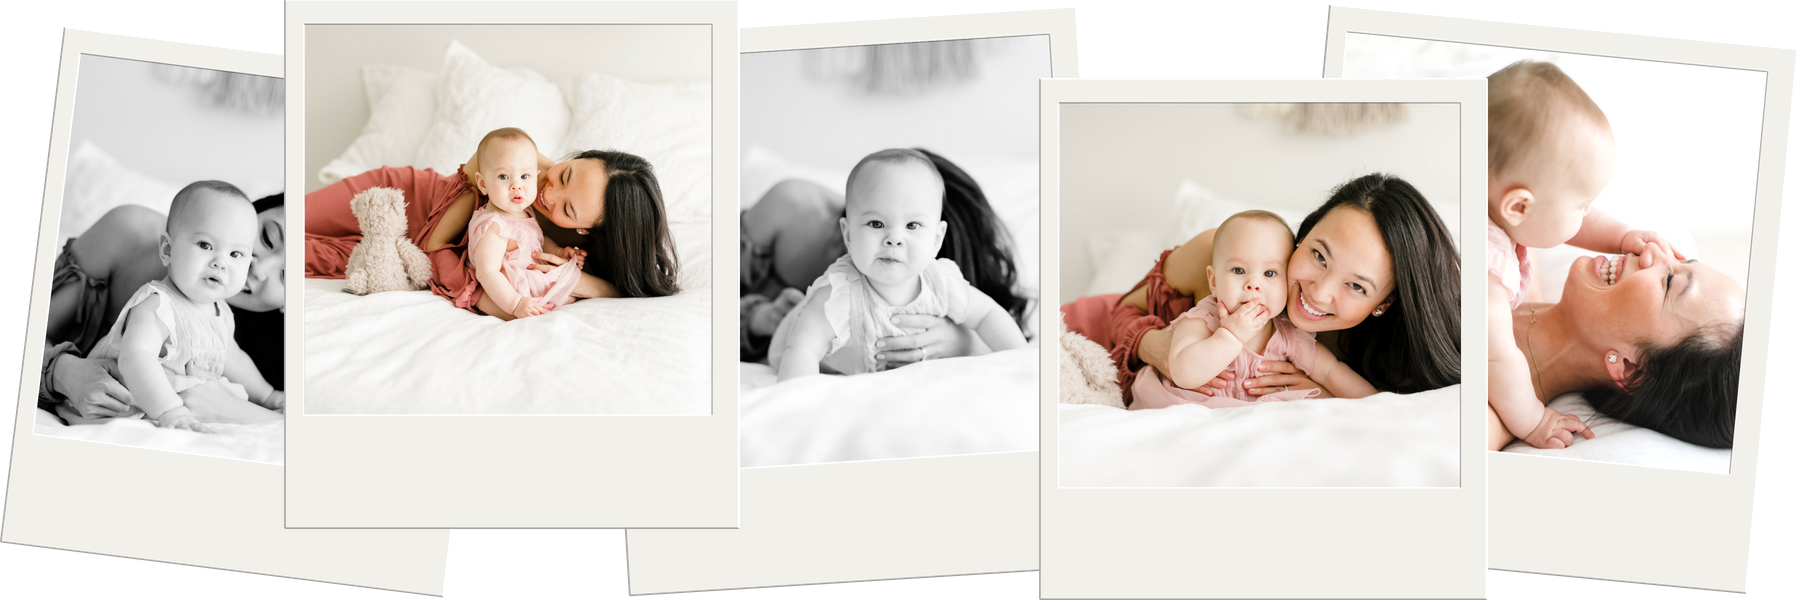 GRIPENTROG BLOG MOMMY AND ME CHICAGO LIFESTYLE SIMPLE SESSION JENNY GRIMM PHOTOGRAPHY 2.png